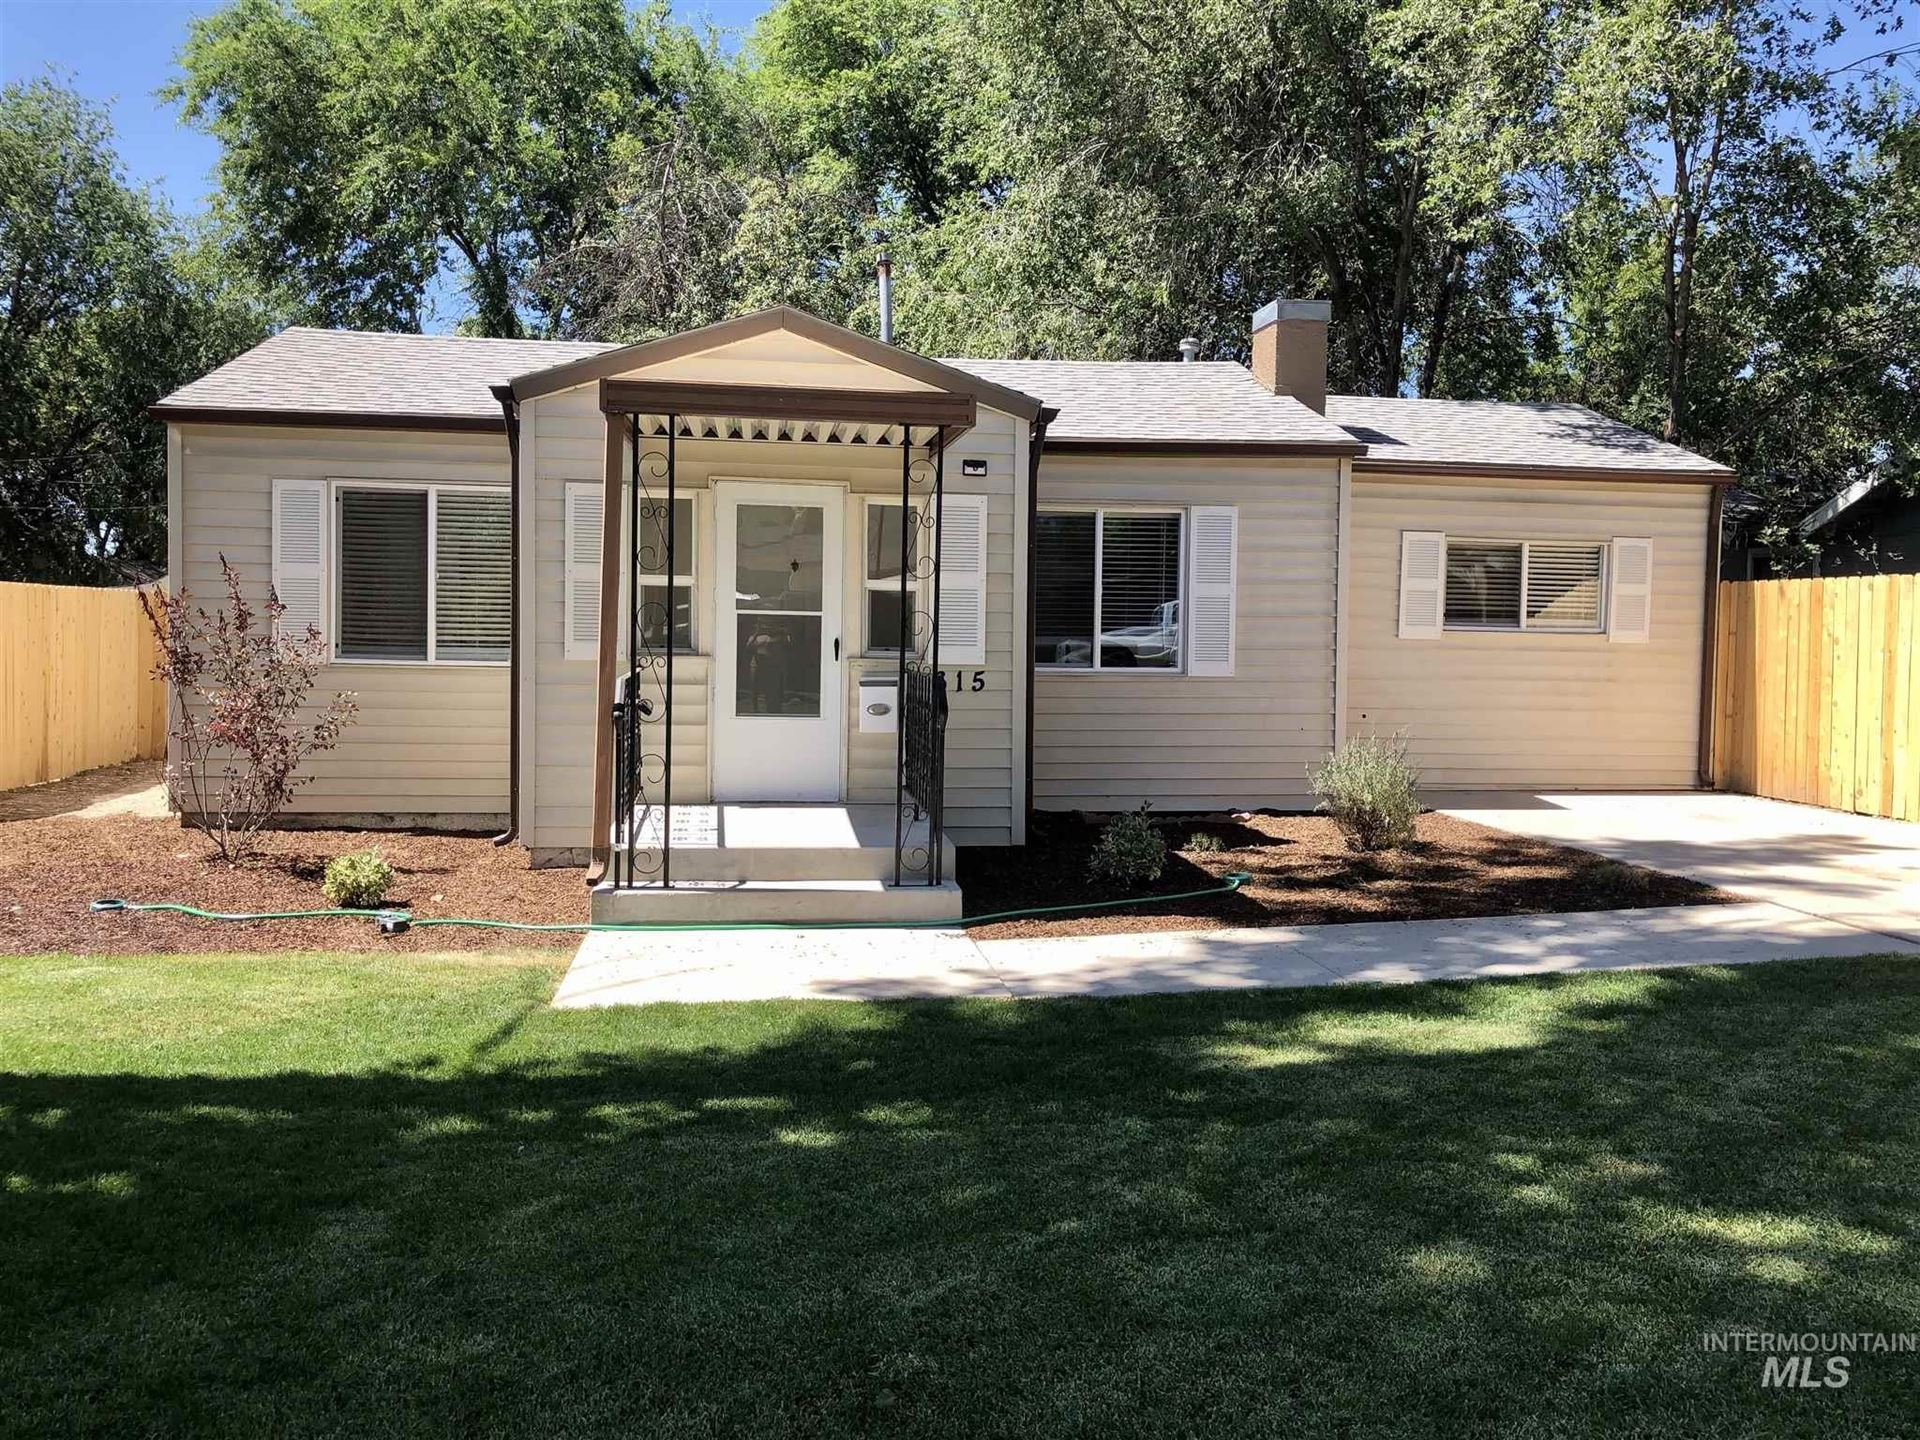 615 S 20th Ave, Nampa, ID 83651 - MLS#: 98774599